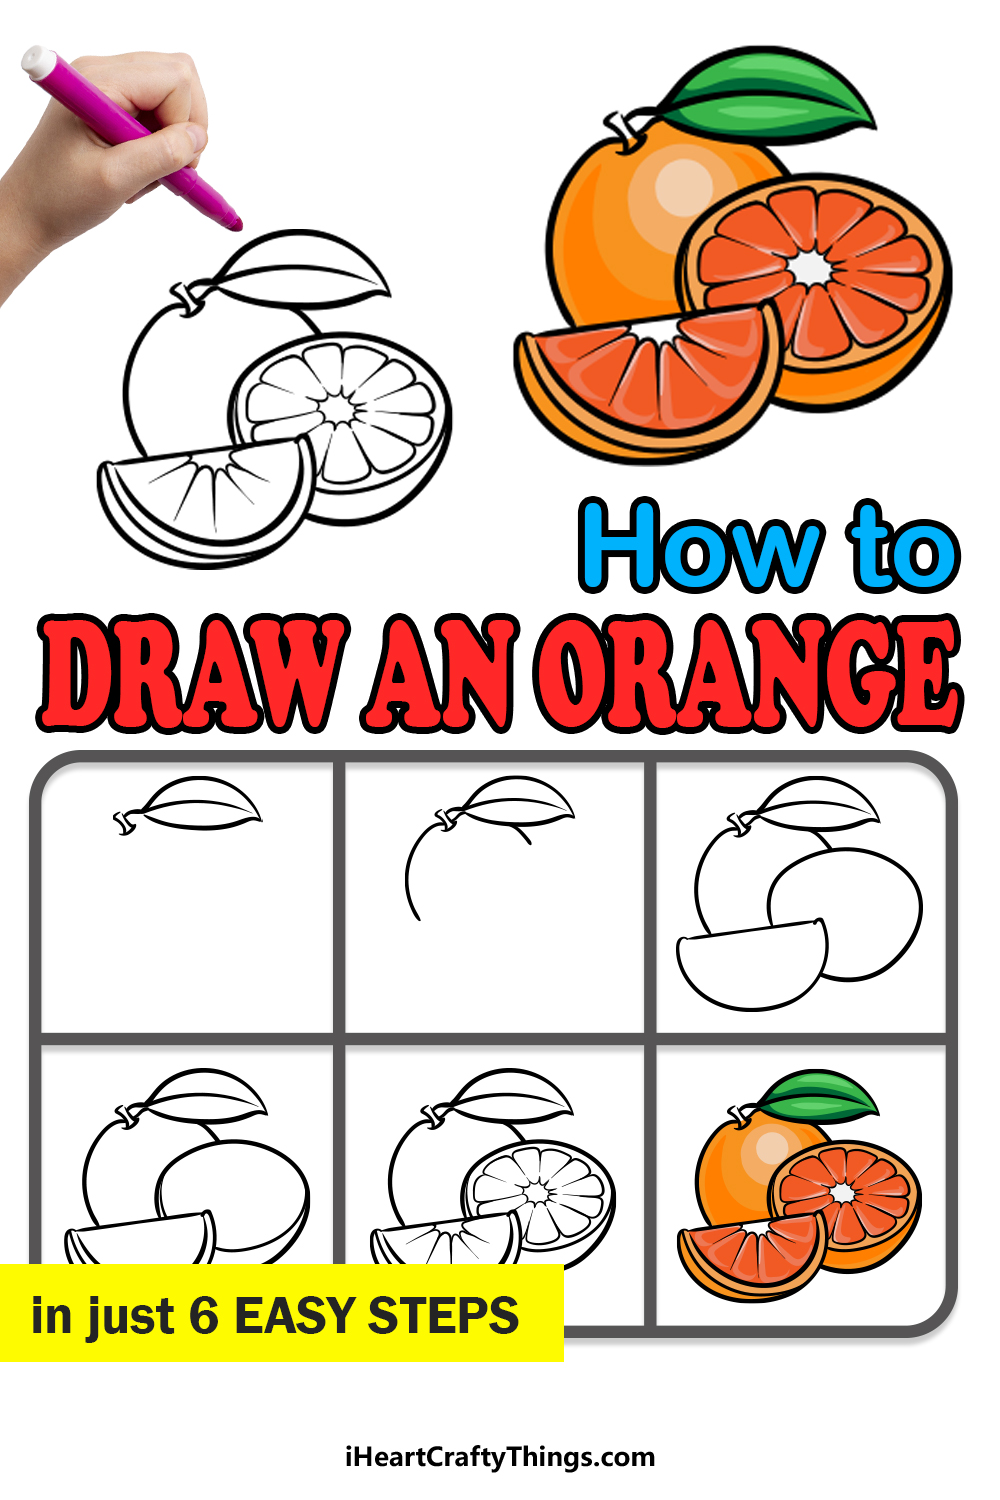 how to draw an orange in 6 easy steps